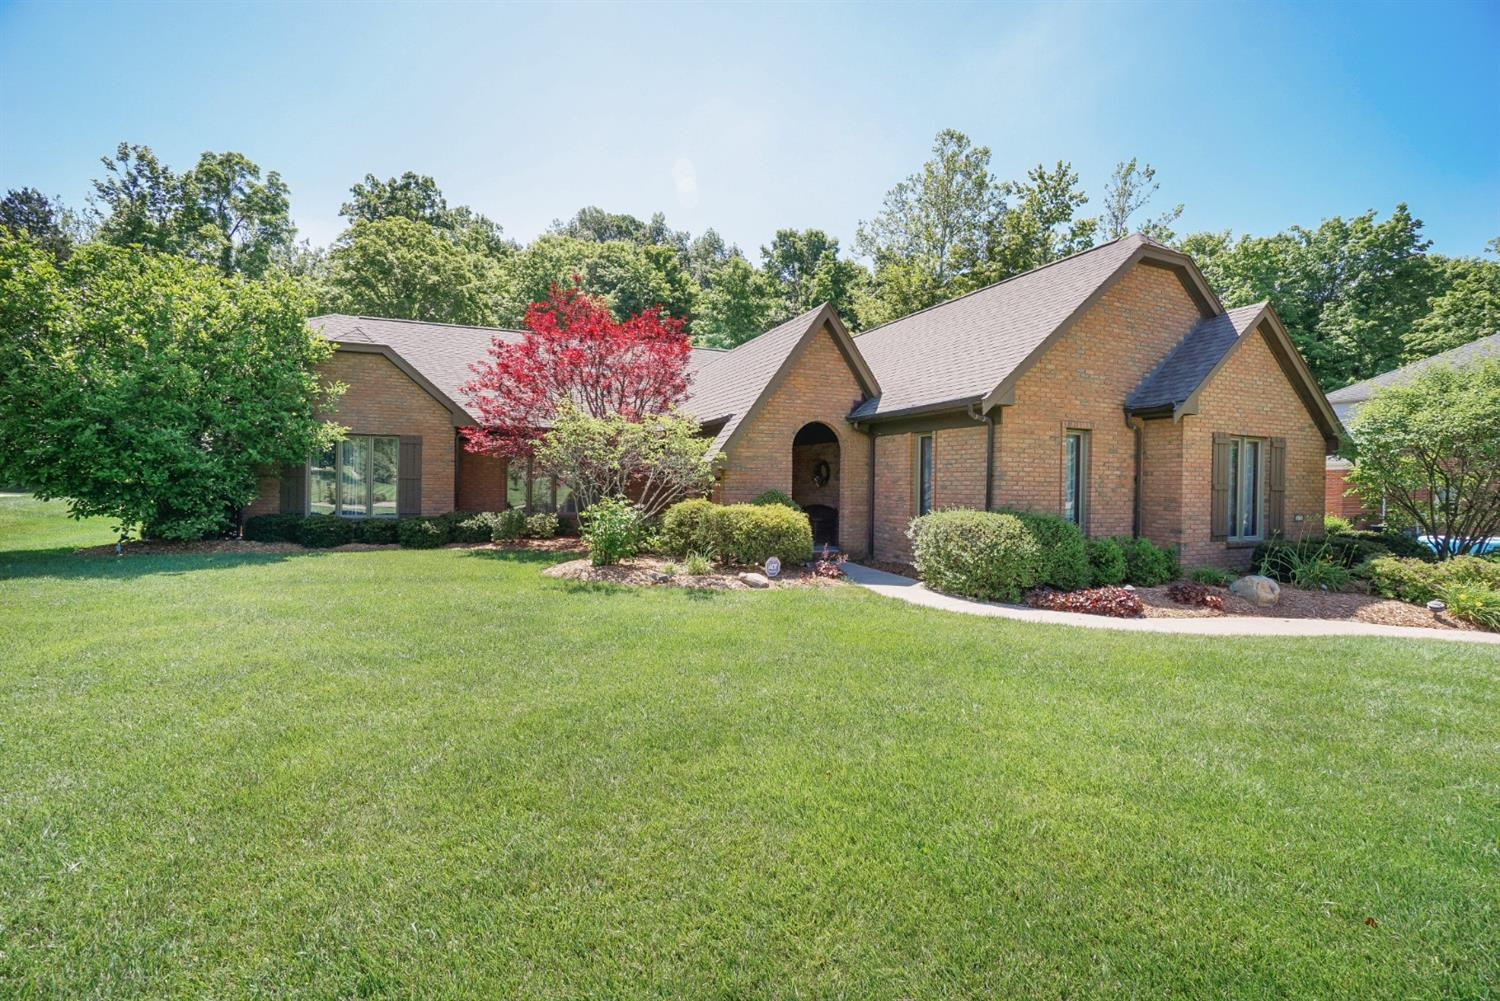 Property for sale at 5076 Pebblevalley Drive, Colerain Twp,  Ohio 45252